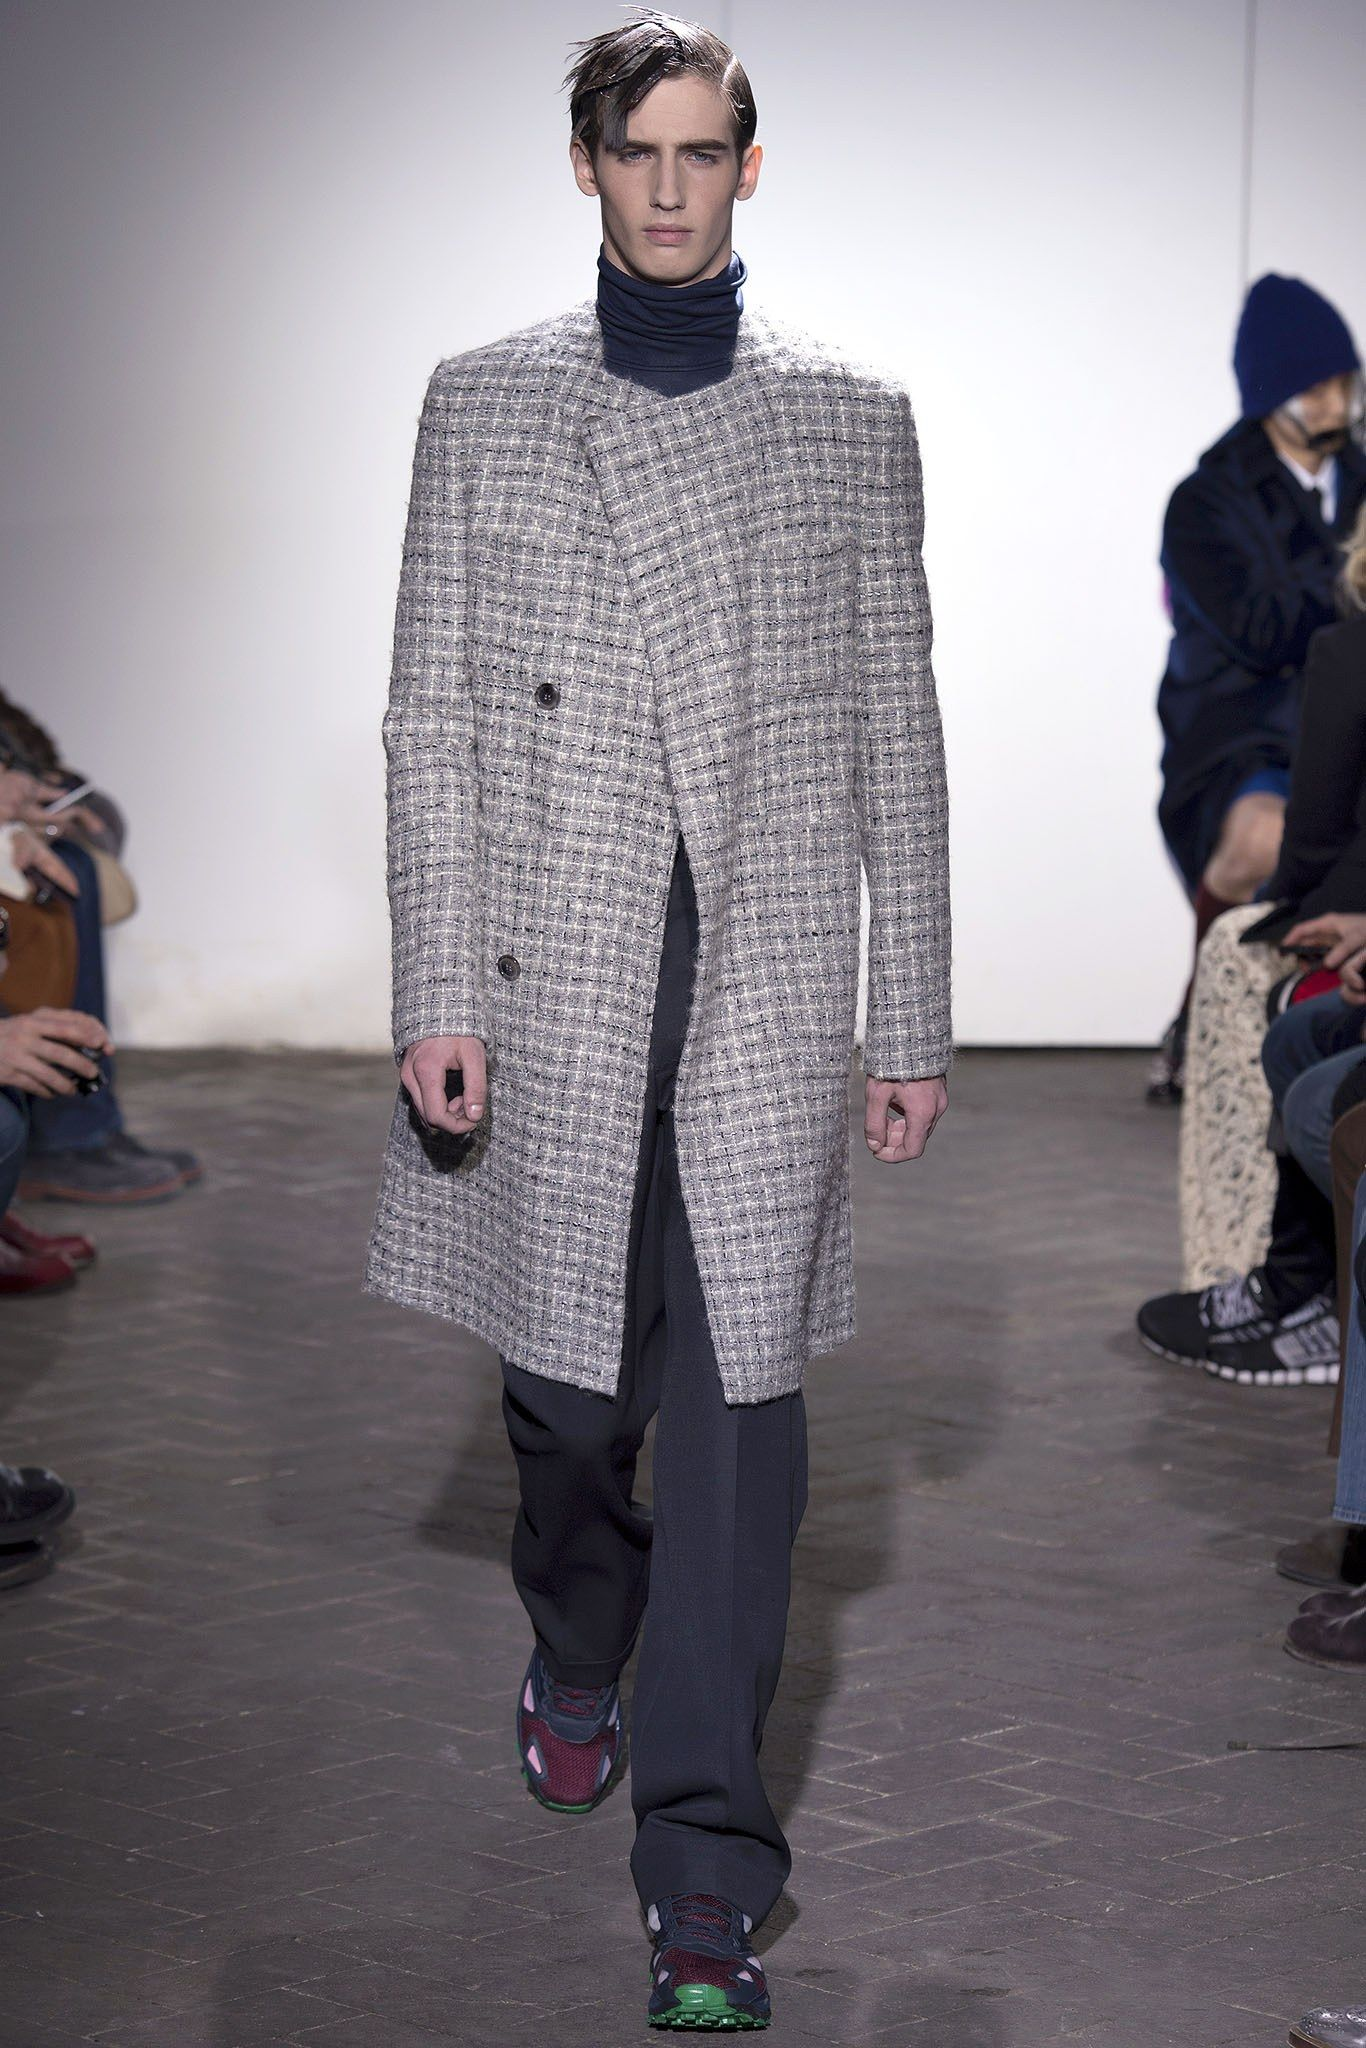 Raf Simons Fall 2013 Menswear Collection Photos - Vogue 6728f1af0